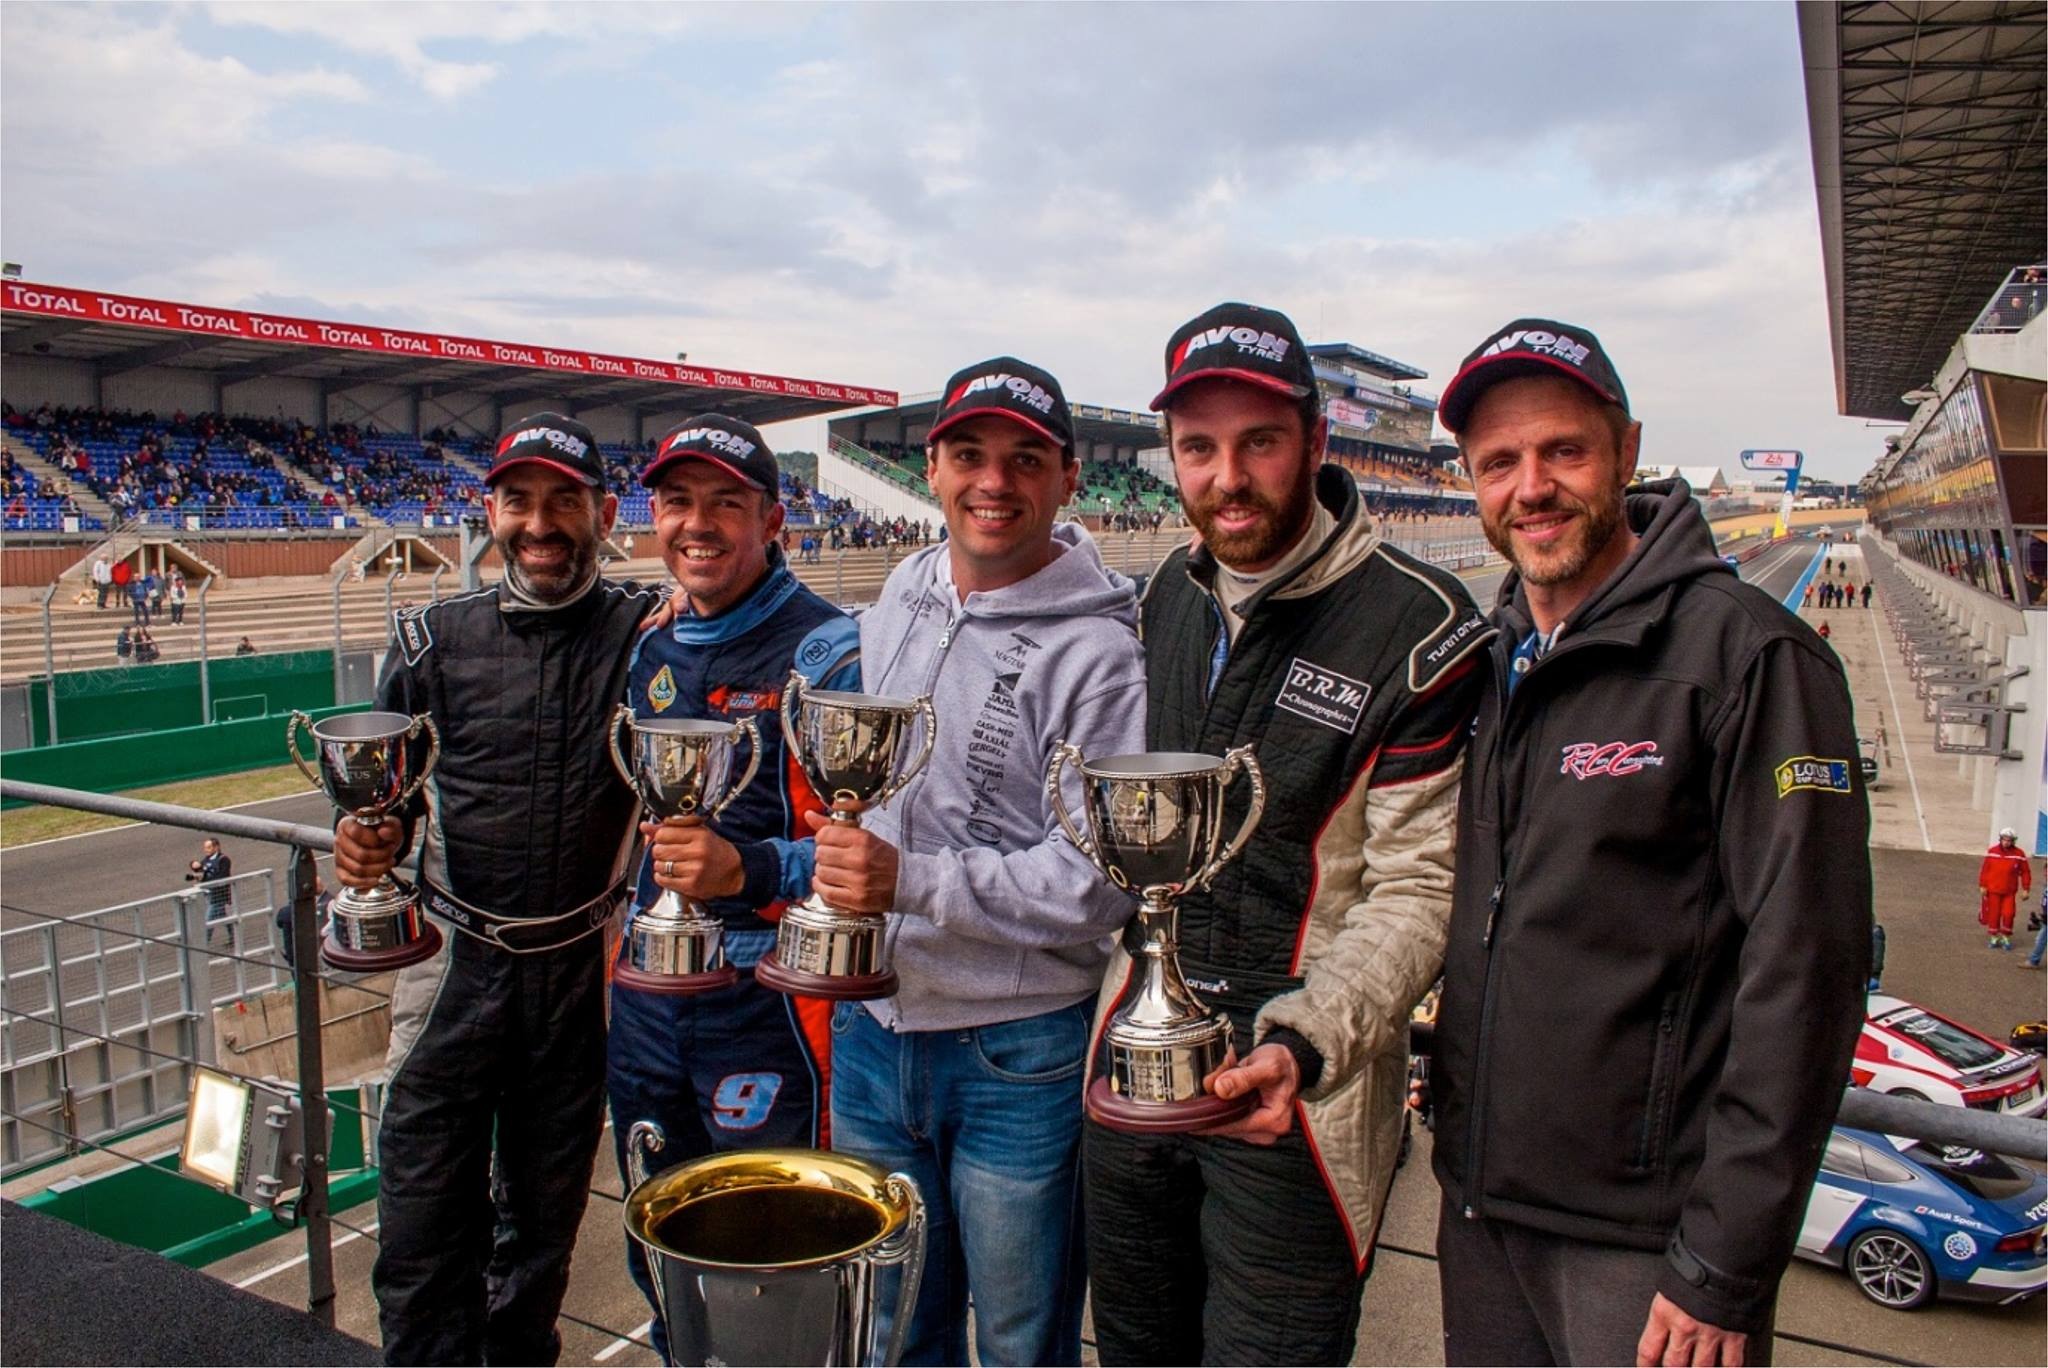 The Lotus Cup Europe spectacular 2016 season has come to a close with a trip to historic Le Mans for the final show down.  📸 : Kevin Ritson https://t.co/l4BGXa8Xe4